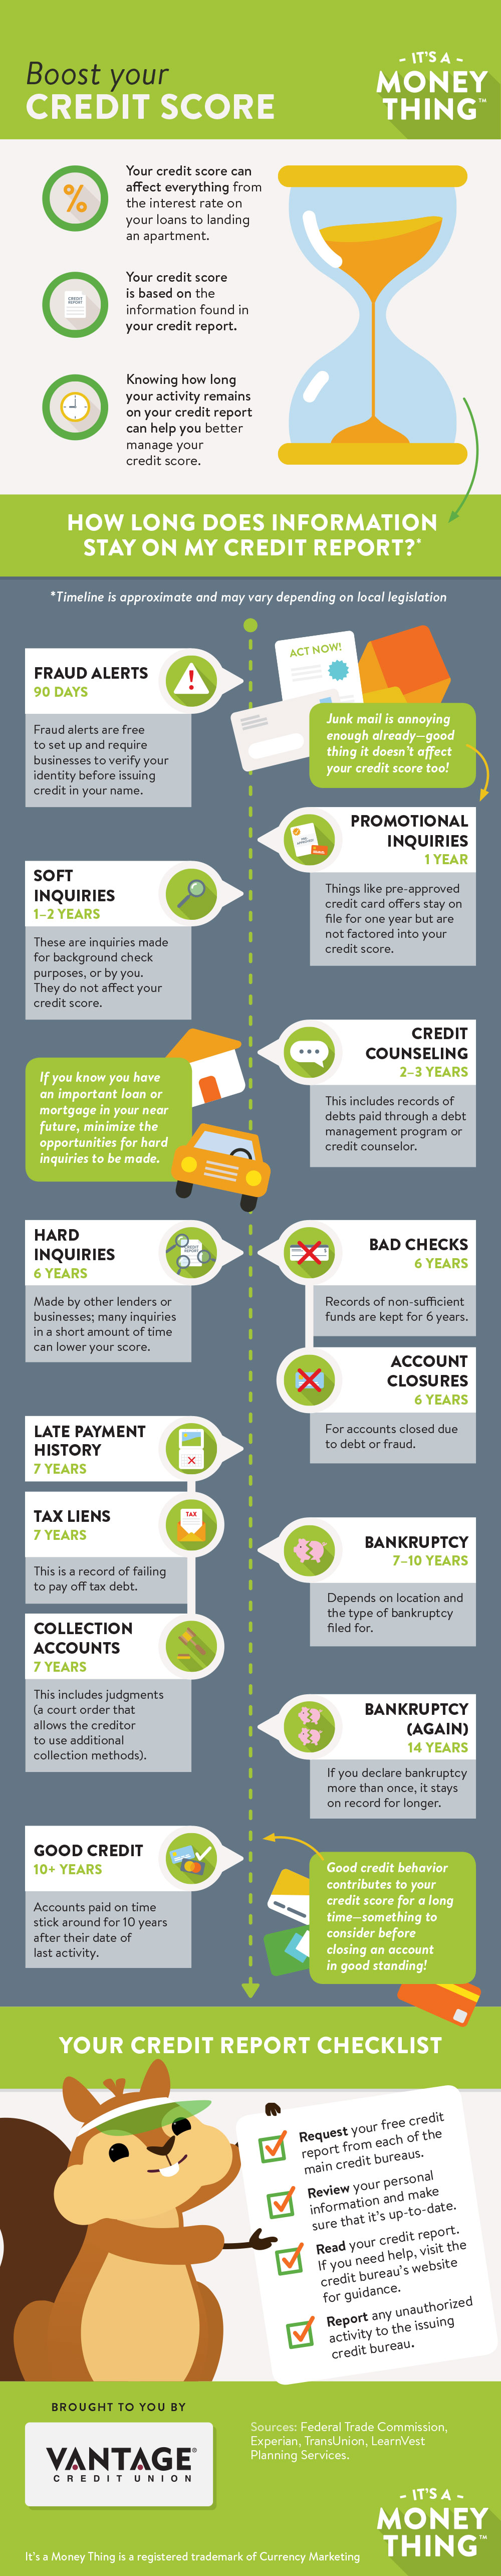 Quick-tips-to-boost-your-credit-score-infographic